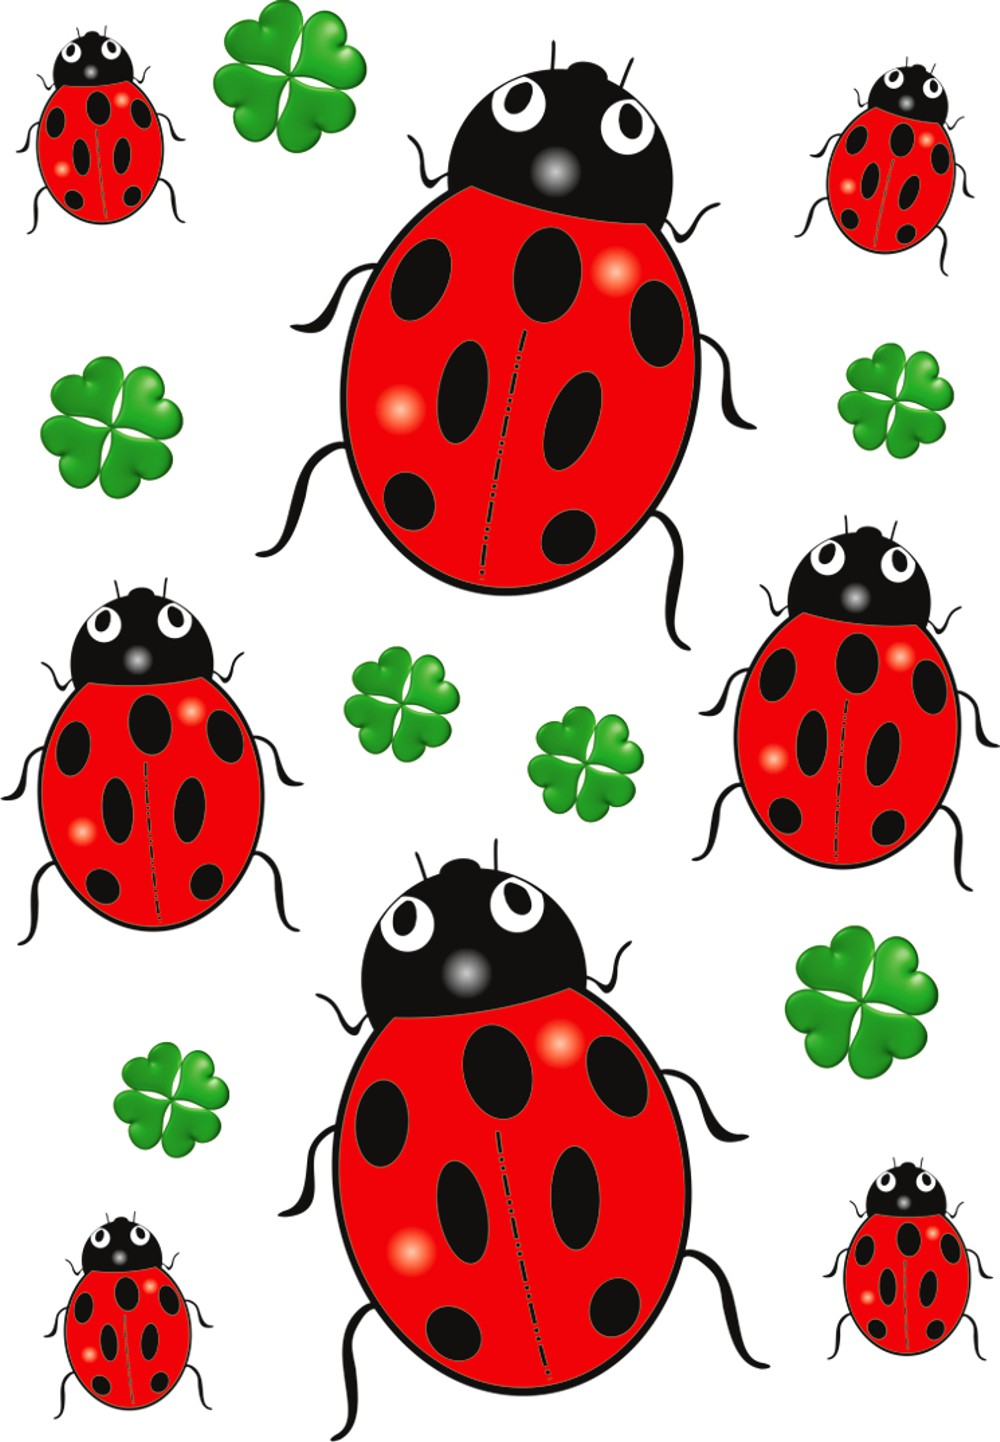 Sticker beetle and clover  300 x 200 mm – Bild 1